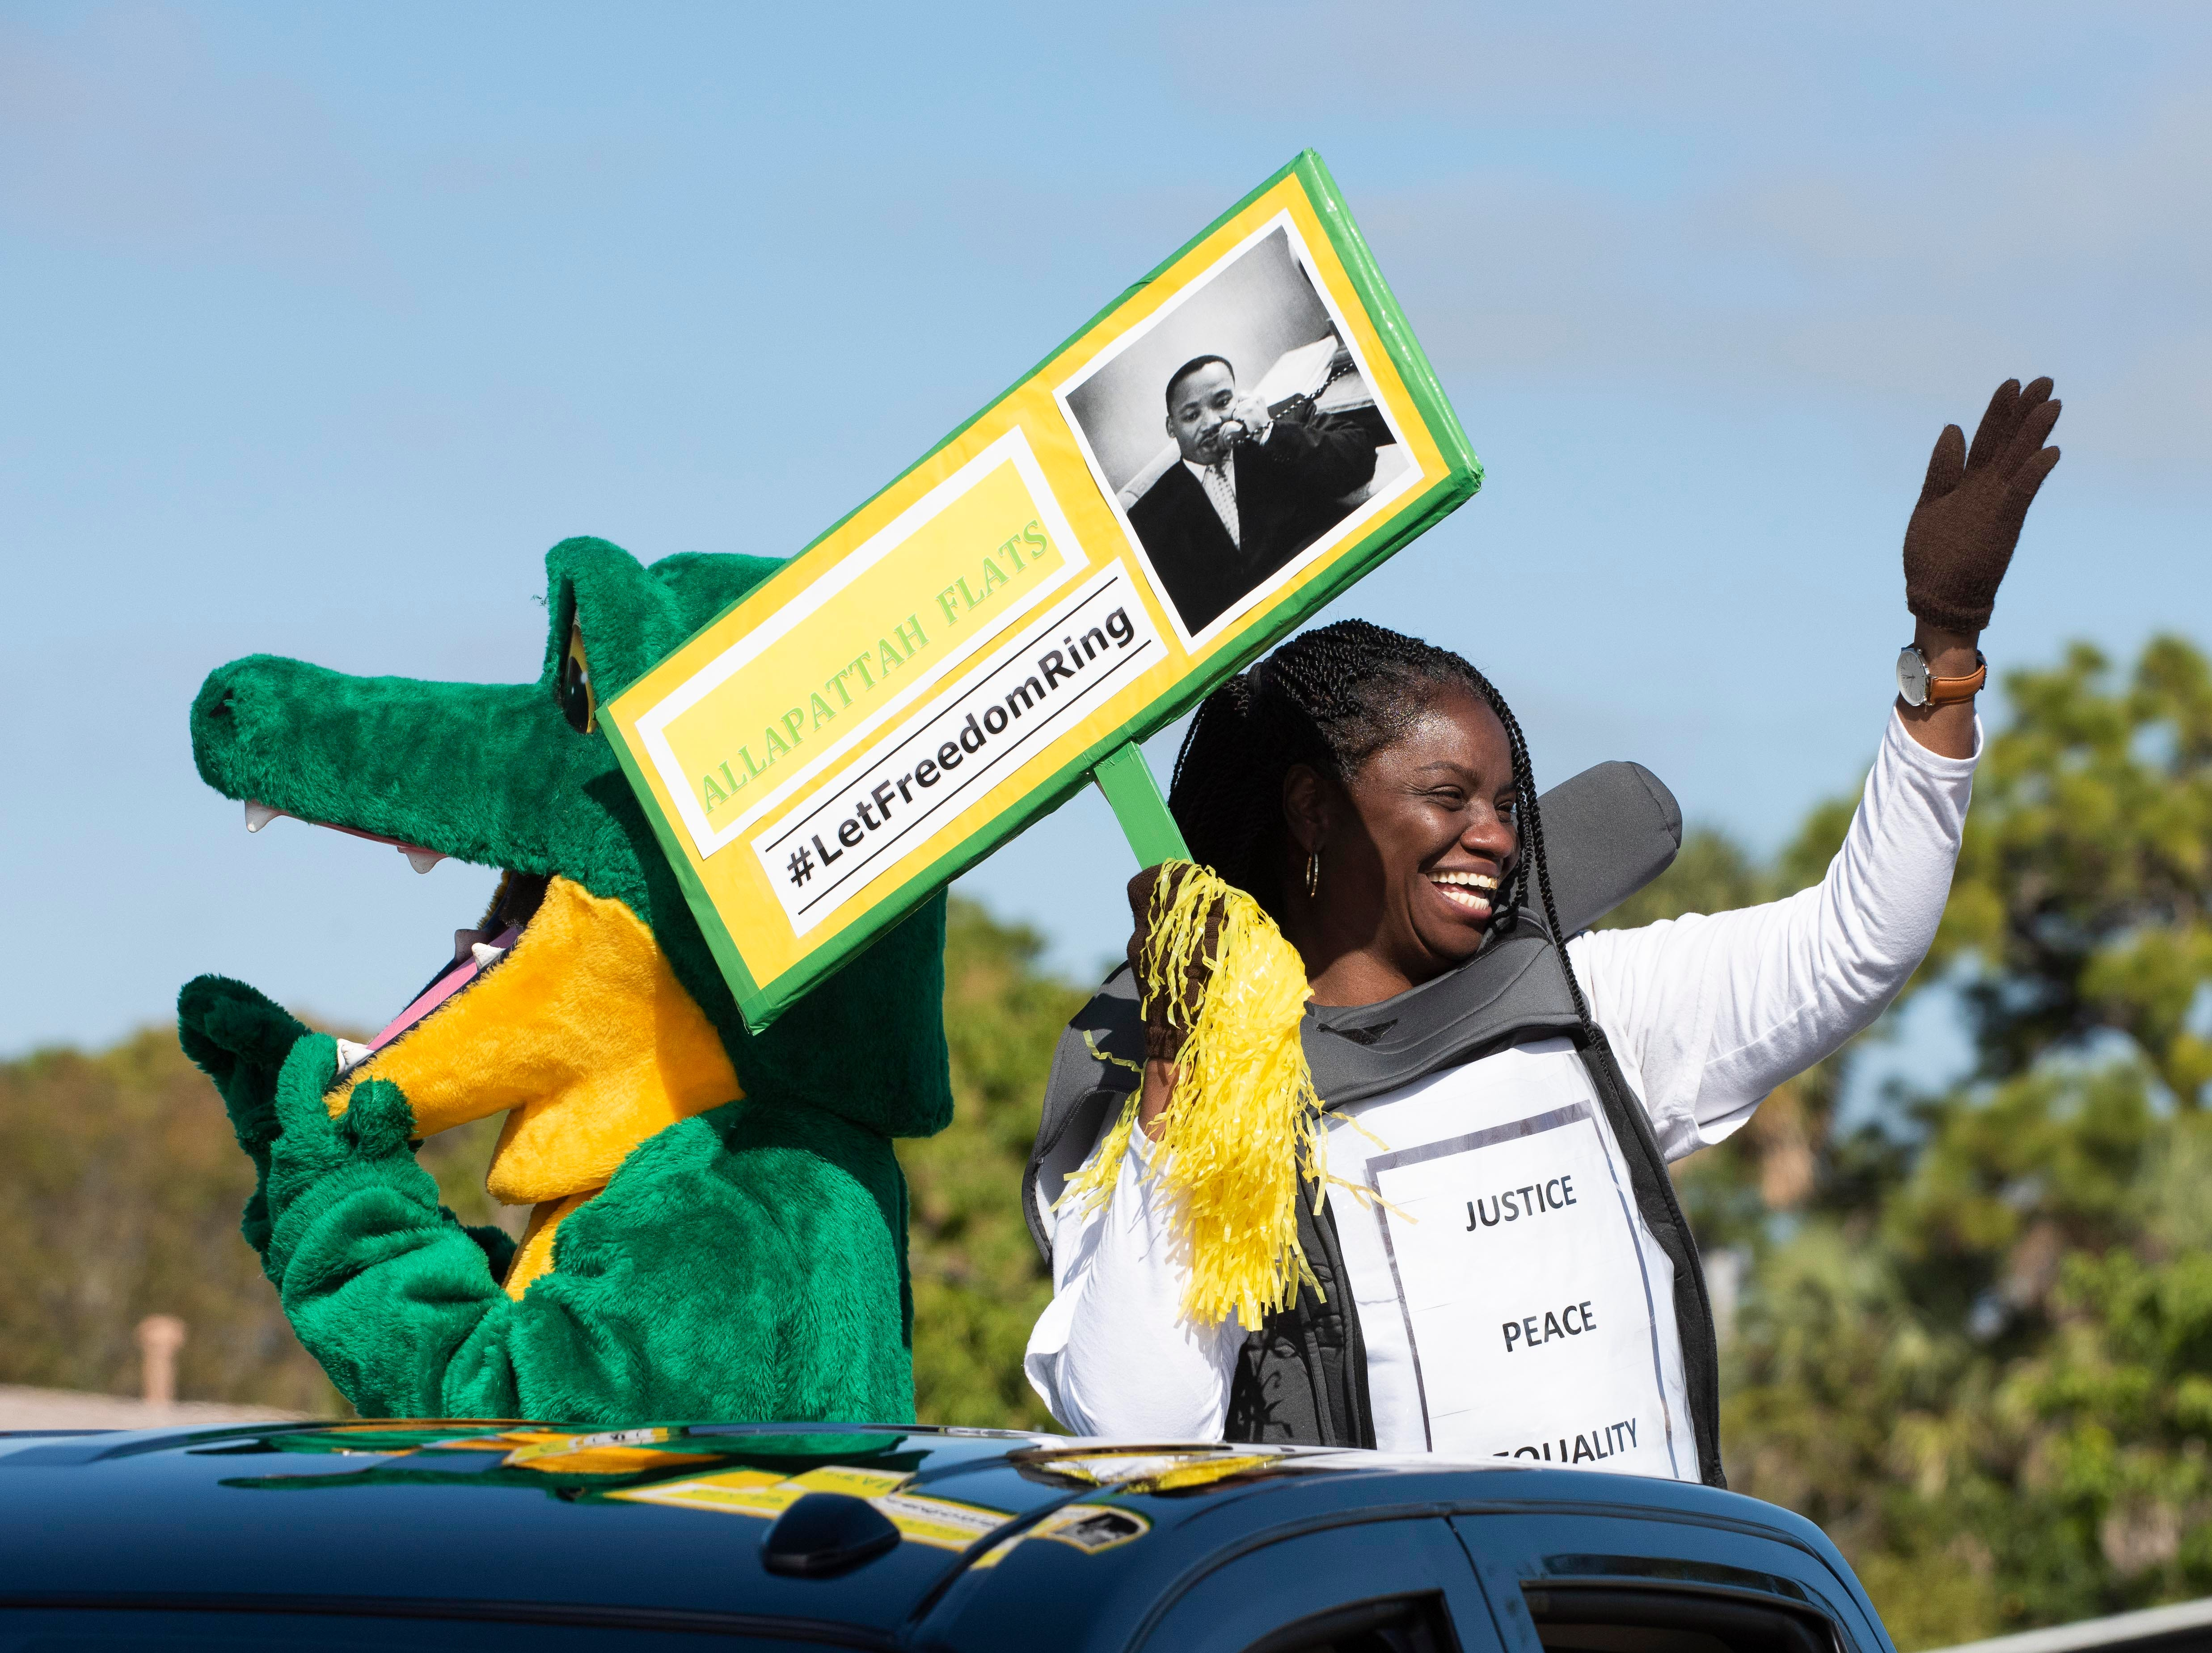 """""""Peace, love and equality. We all need all of those things,"""" said Dorothy Hambrick, a teacher from Allapattah Flats K-8, who rides in the annual Dr. Martin Luther King Jr. Grand Parade on Monday, Jan. 21, 2019, in Fort Pierce. The parade began at Avenue I and Dr. Martin Luther King Boulevard and ended at Lawnwood Stadium. The theme of this year's parade was """"A Legacy of Justice, Peace and Equality."""""""